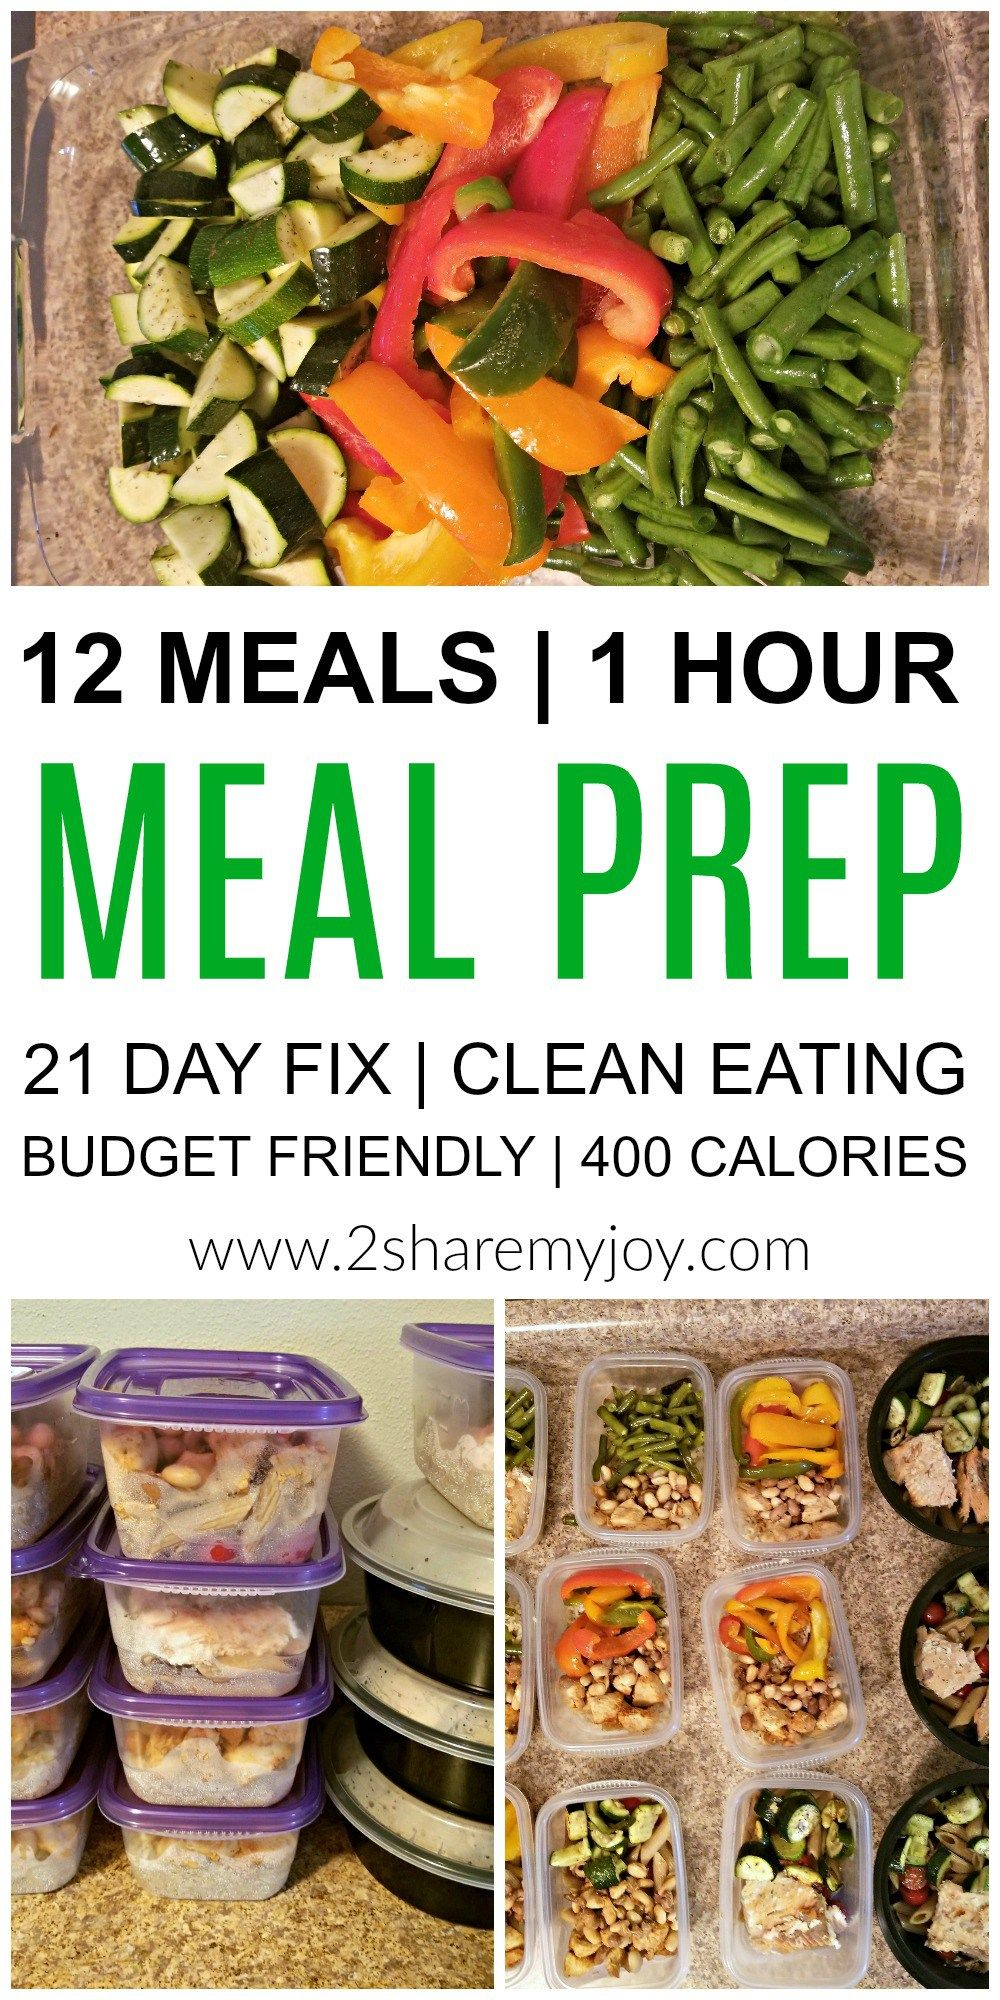 Meal Prep 12 Healthy Lunches In 1 Hour With Images Clean Meal